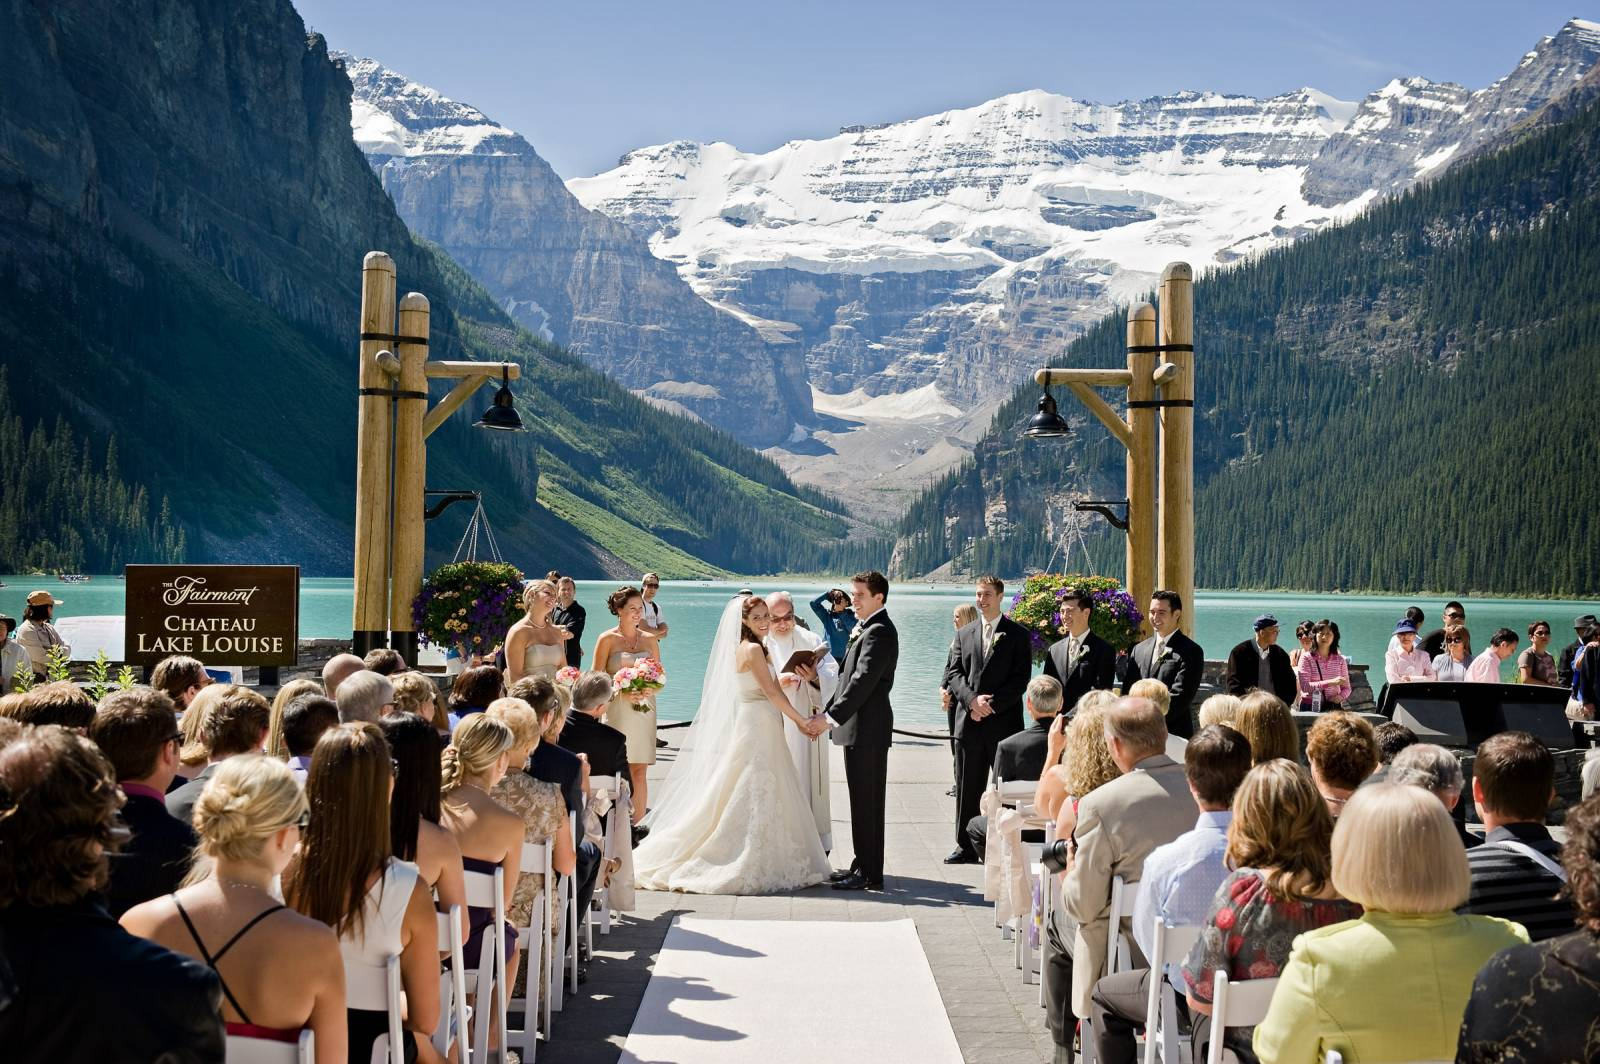 Fairmont Chateau Lake Louise Wedding Venue Lake Louise Venues